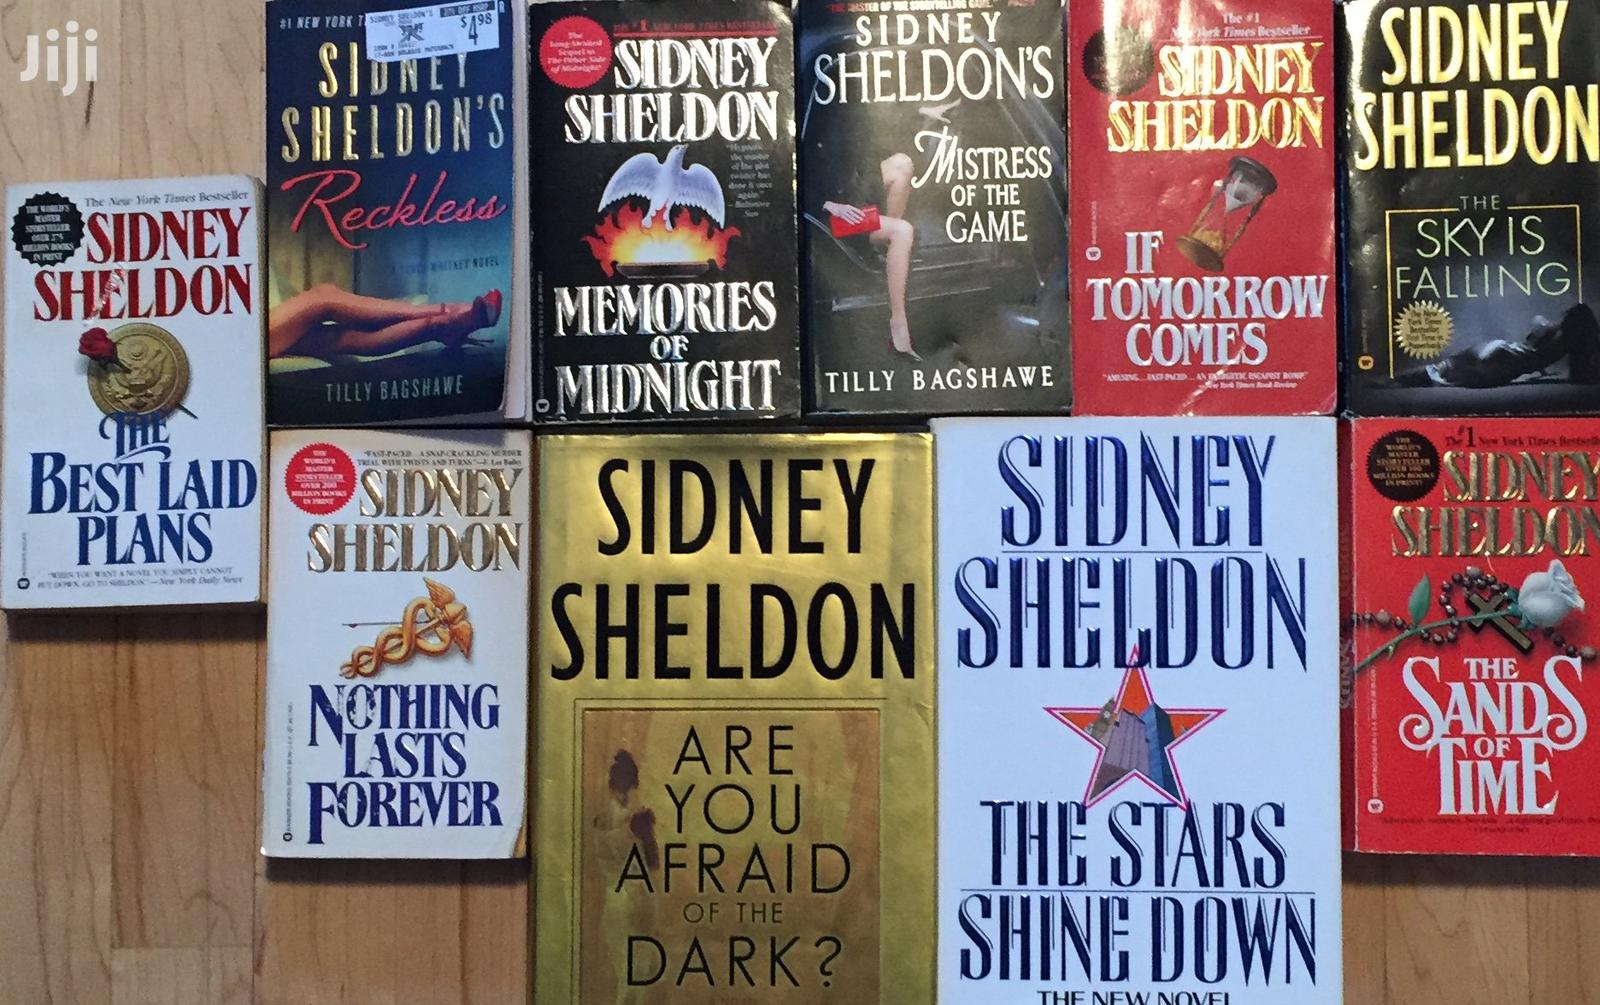 Sidney Sheldon Thriller Novel Collection 10 Book Set (E-Books)